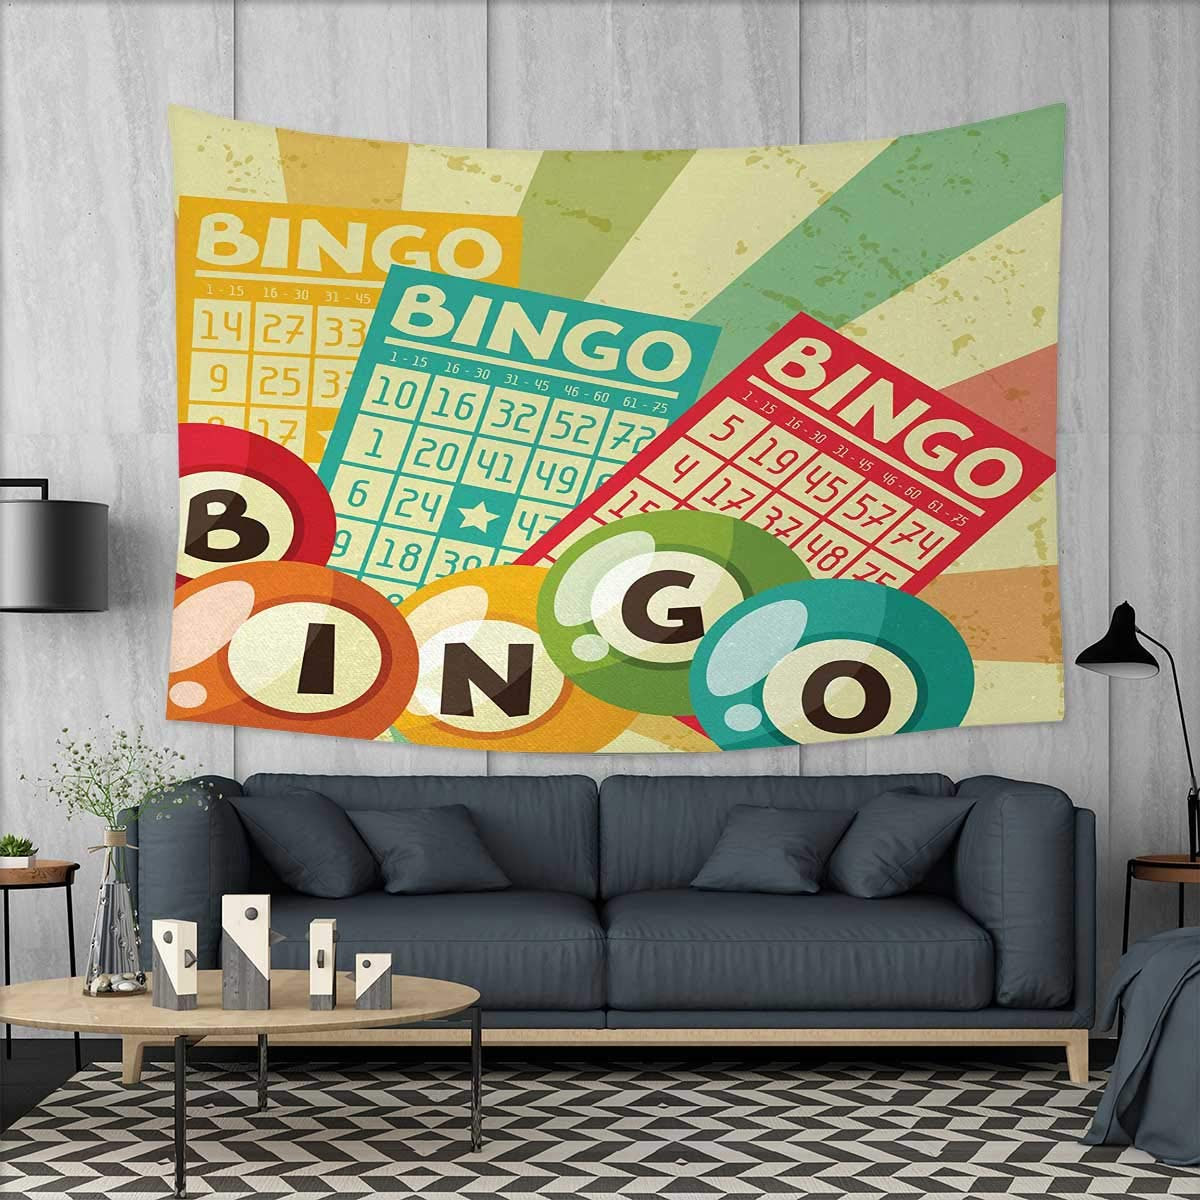 Anniutwo Vintage Wall Hanging Tapestry Bingo Game with Ball and Cards Pop Art Stylized Lottery Hobby Celebration Theme Customed Widened Tapestry W90 x L60 (inch) Multicolor by Anniutwo